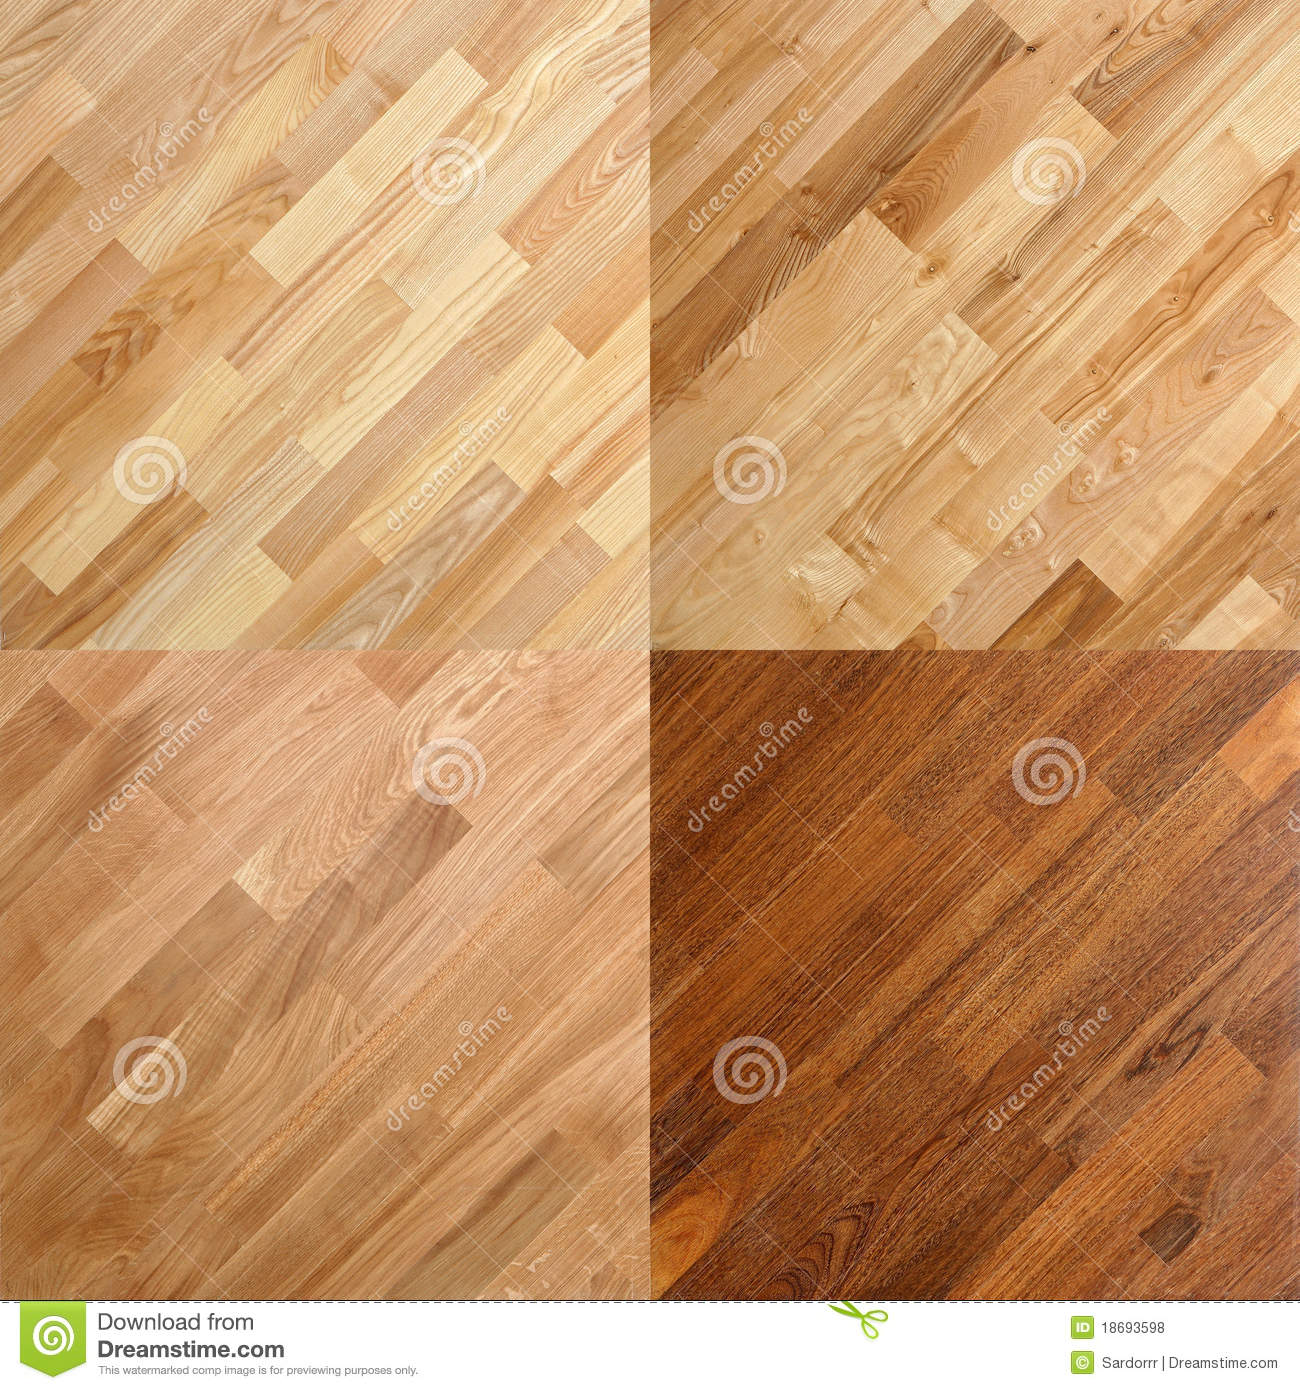 wooden surface parquet floor plank backgrounds royalty free stock photos image 18693598. Black Bedroom Furniture Sets. Home Design Ideas